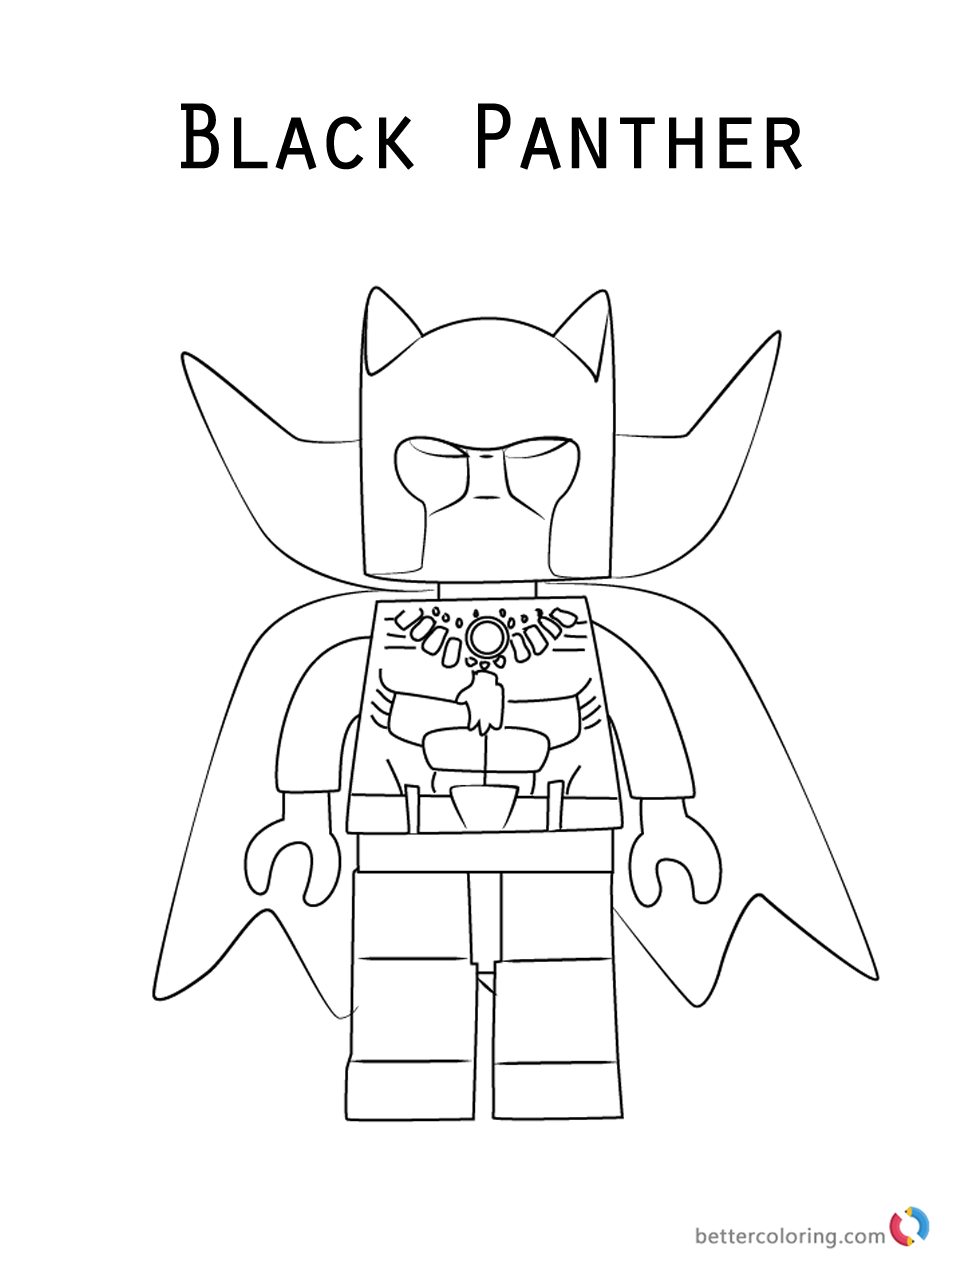 Black Panther LEGO Coloring Pages